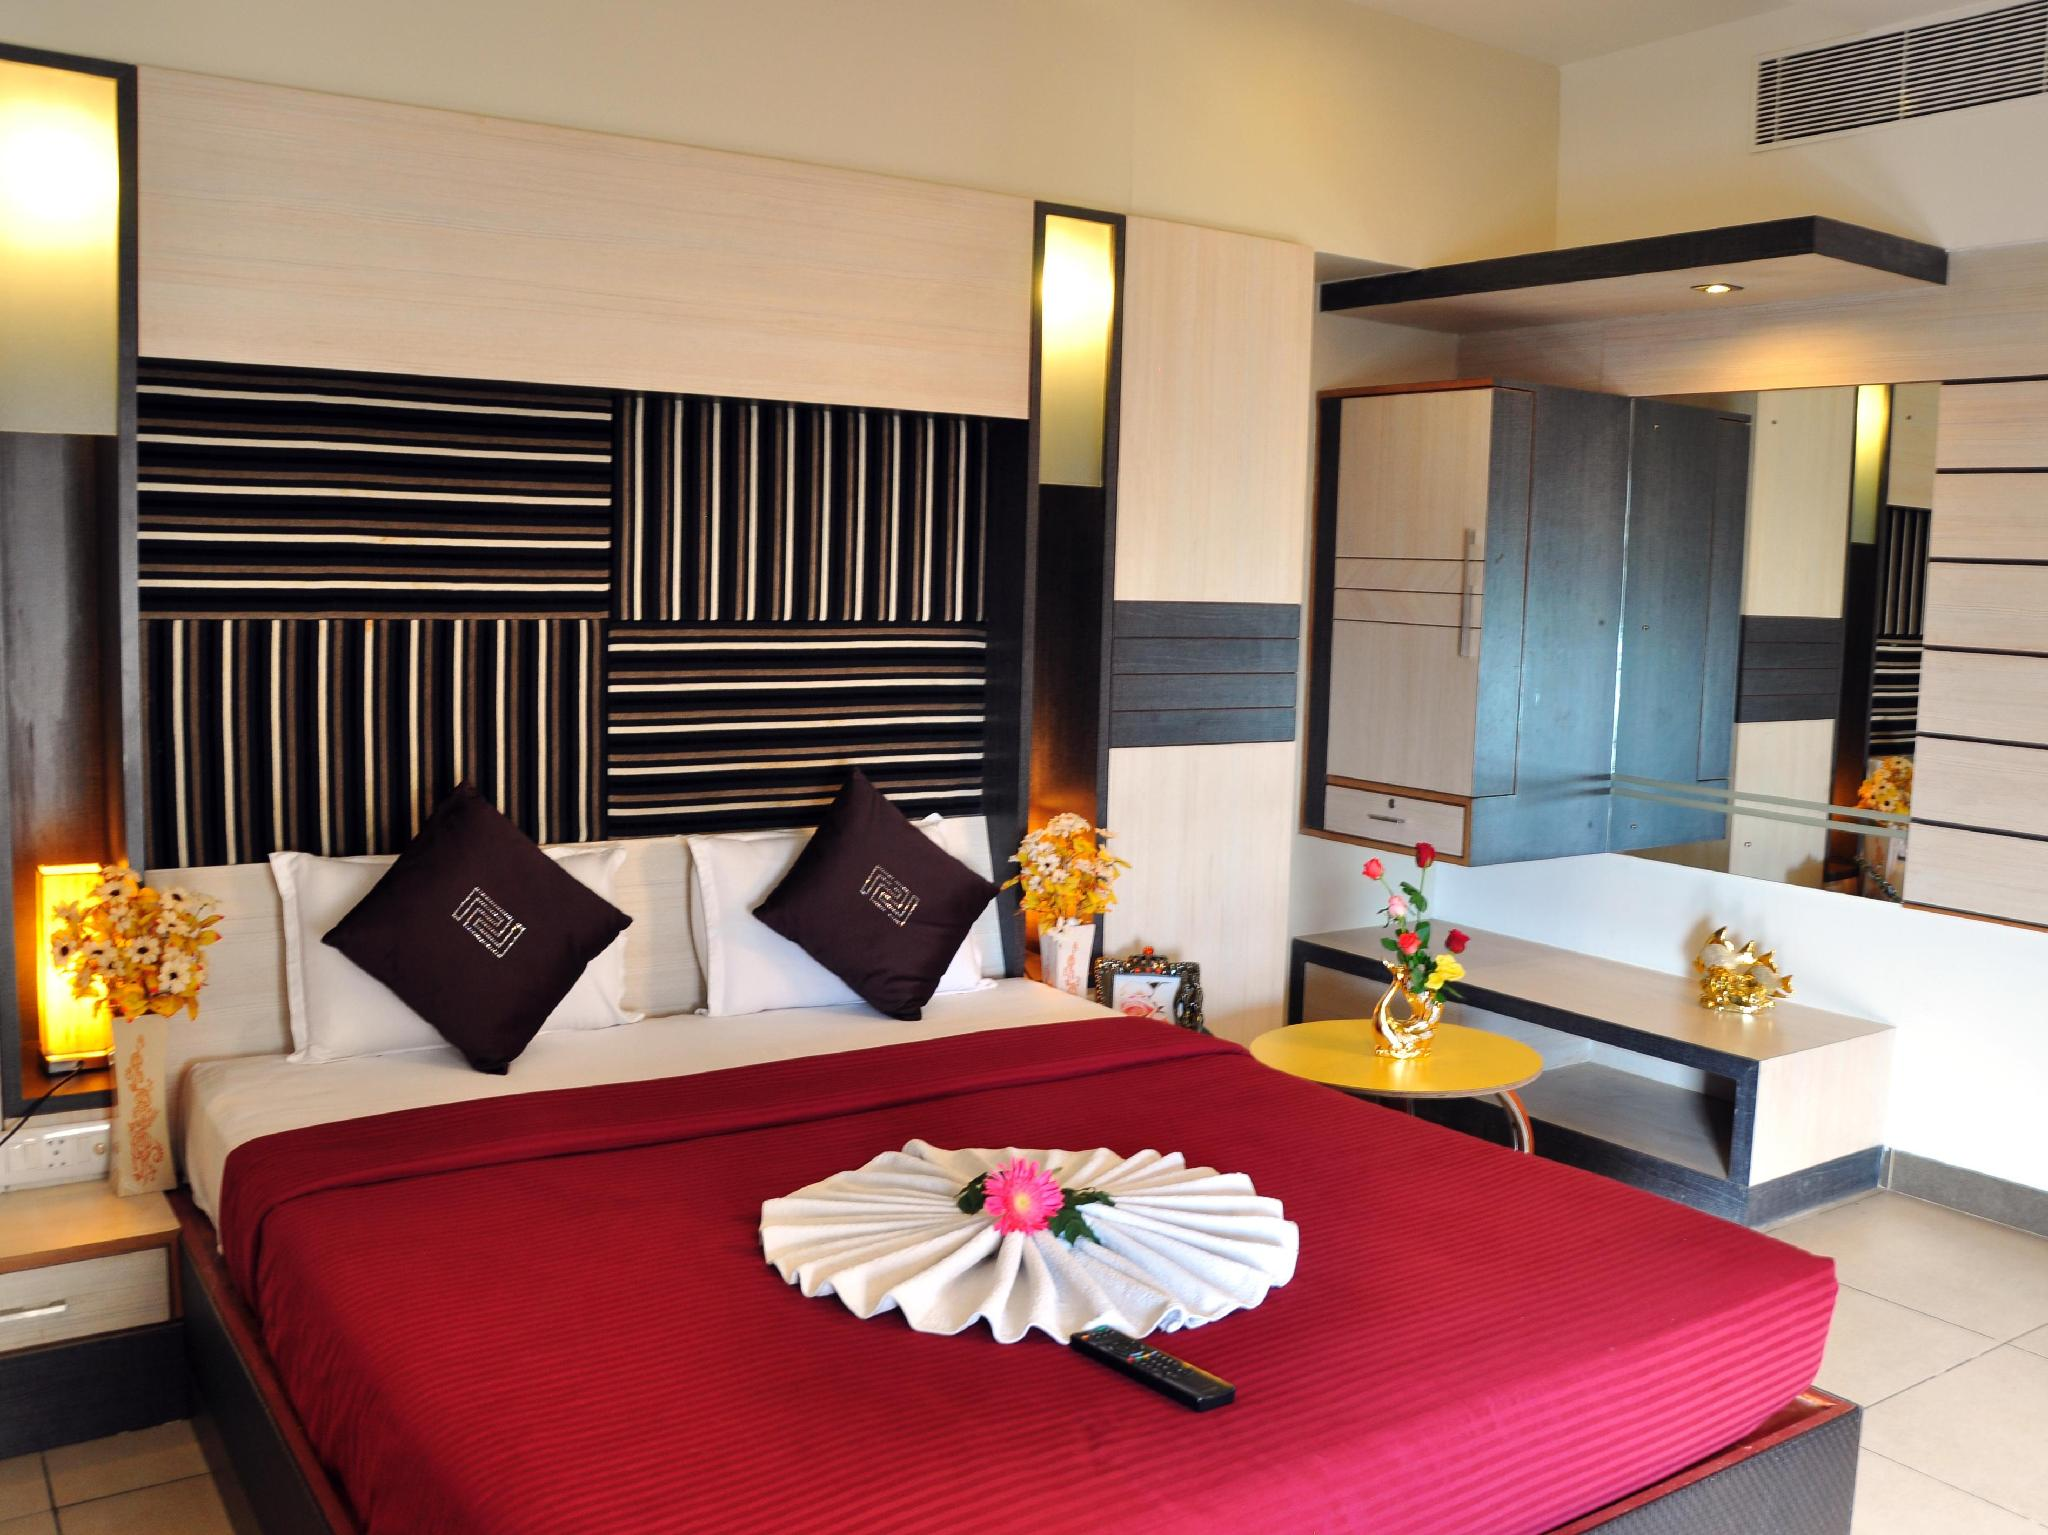 Hotel Sun Park - Hotel and accommodation in India in Pondicherry